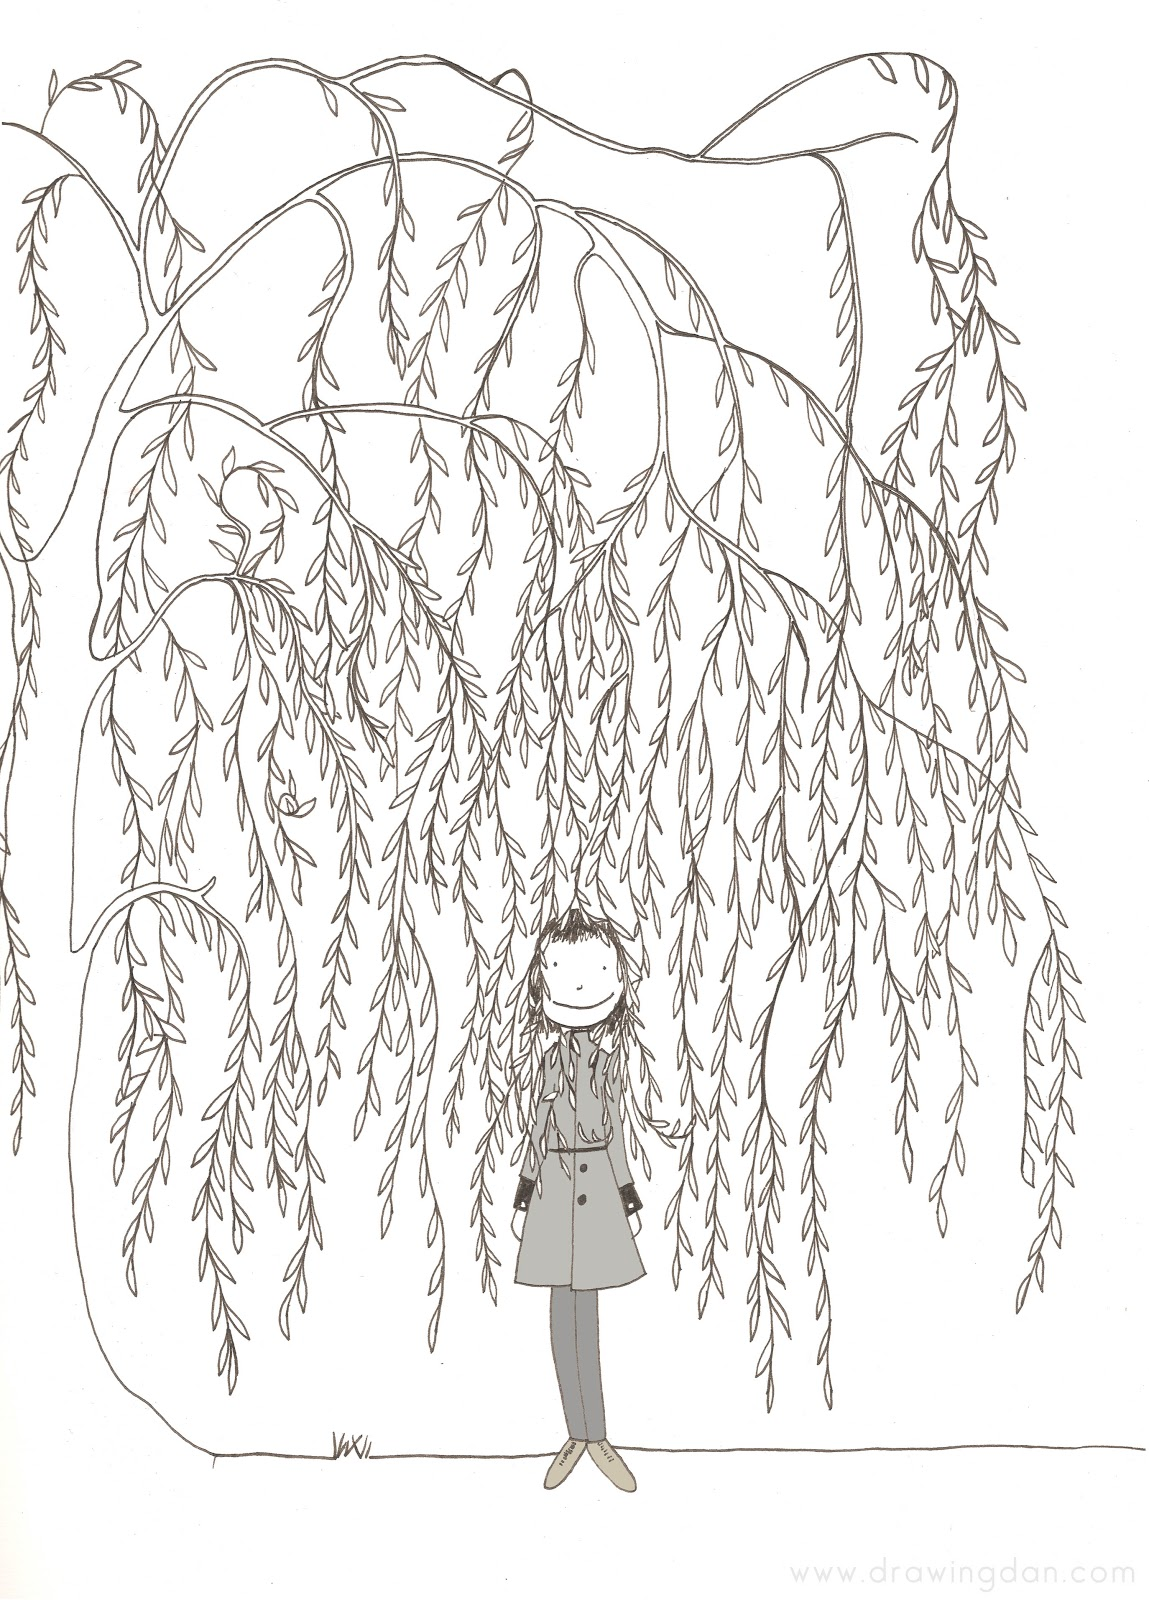 willow tree coloring pages - photo#23